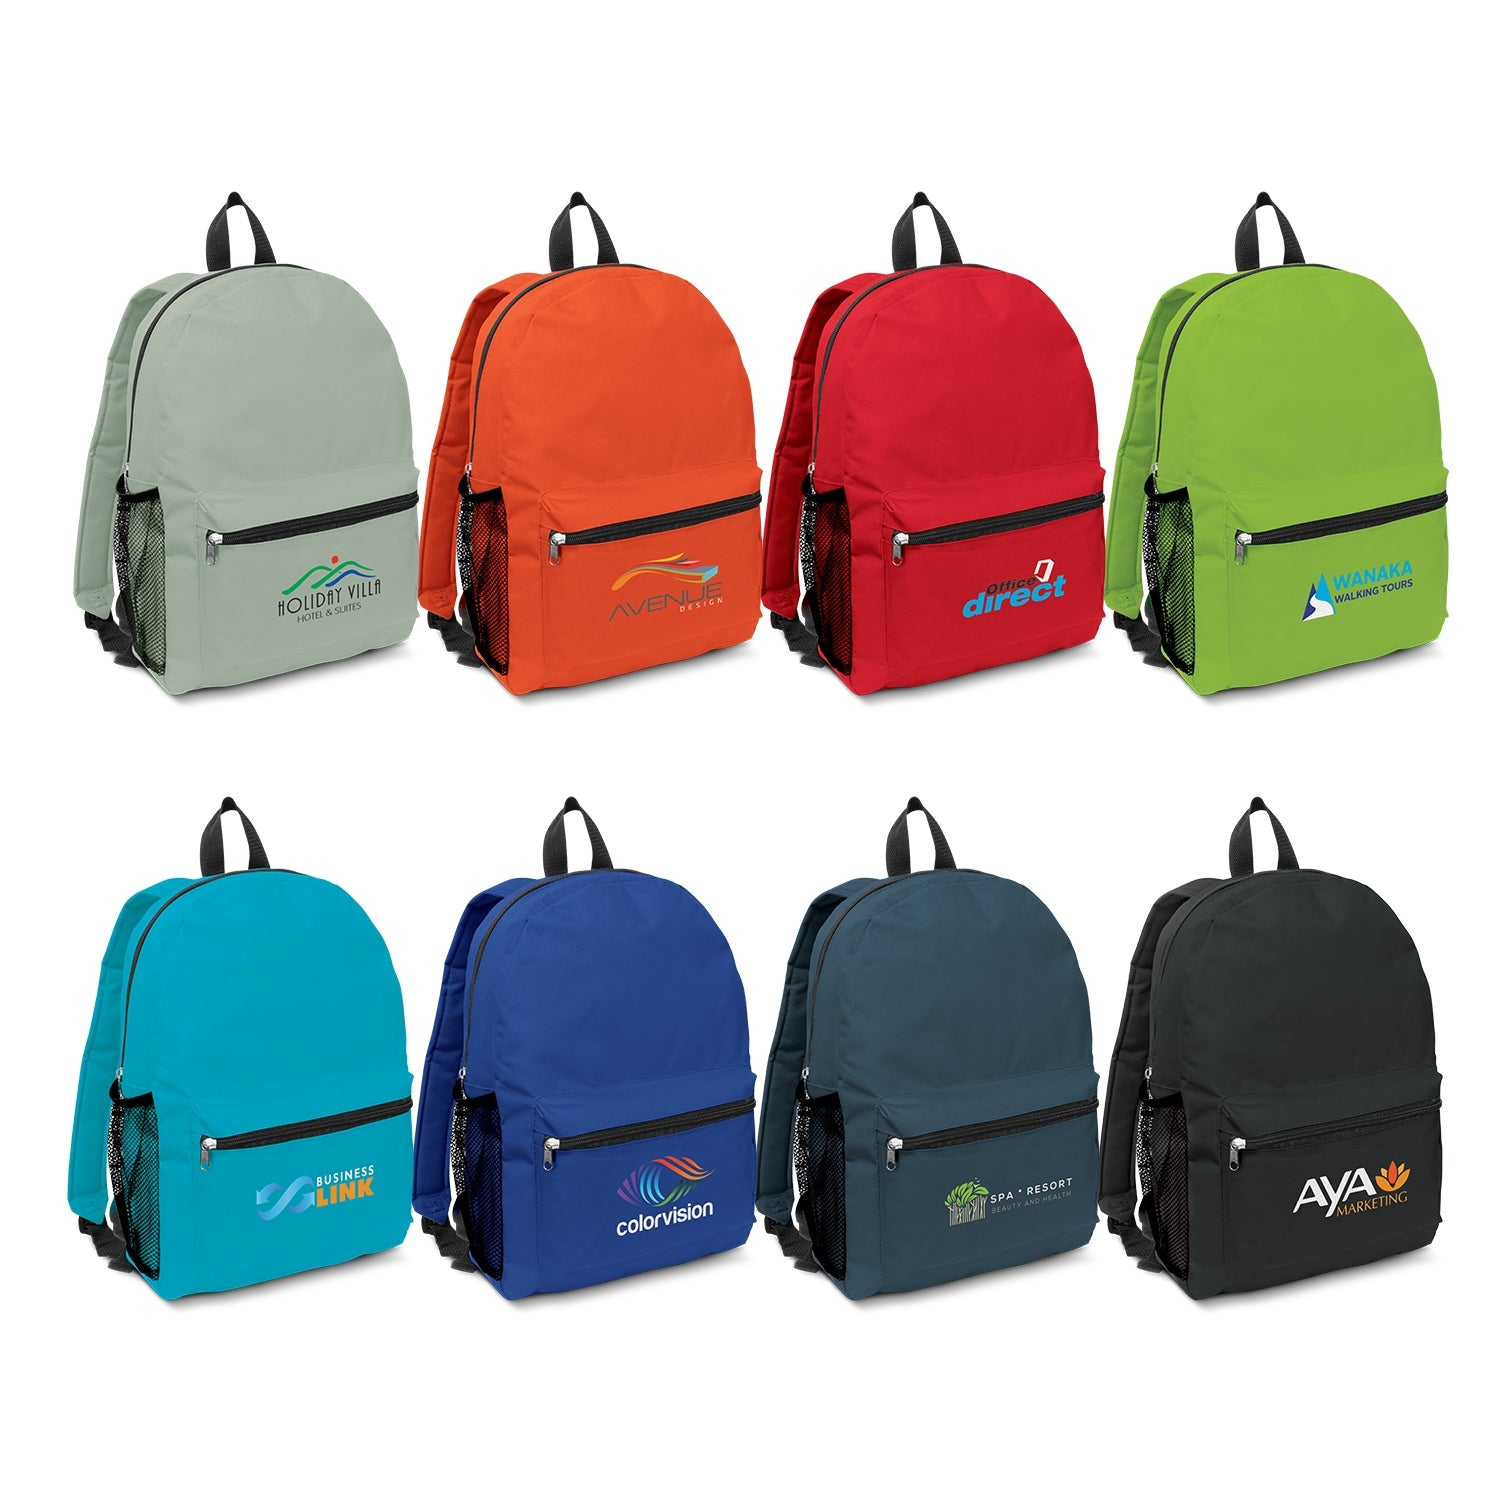 Stock Budget Backpack(SNB-87T) - greenpac.com.au